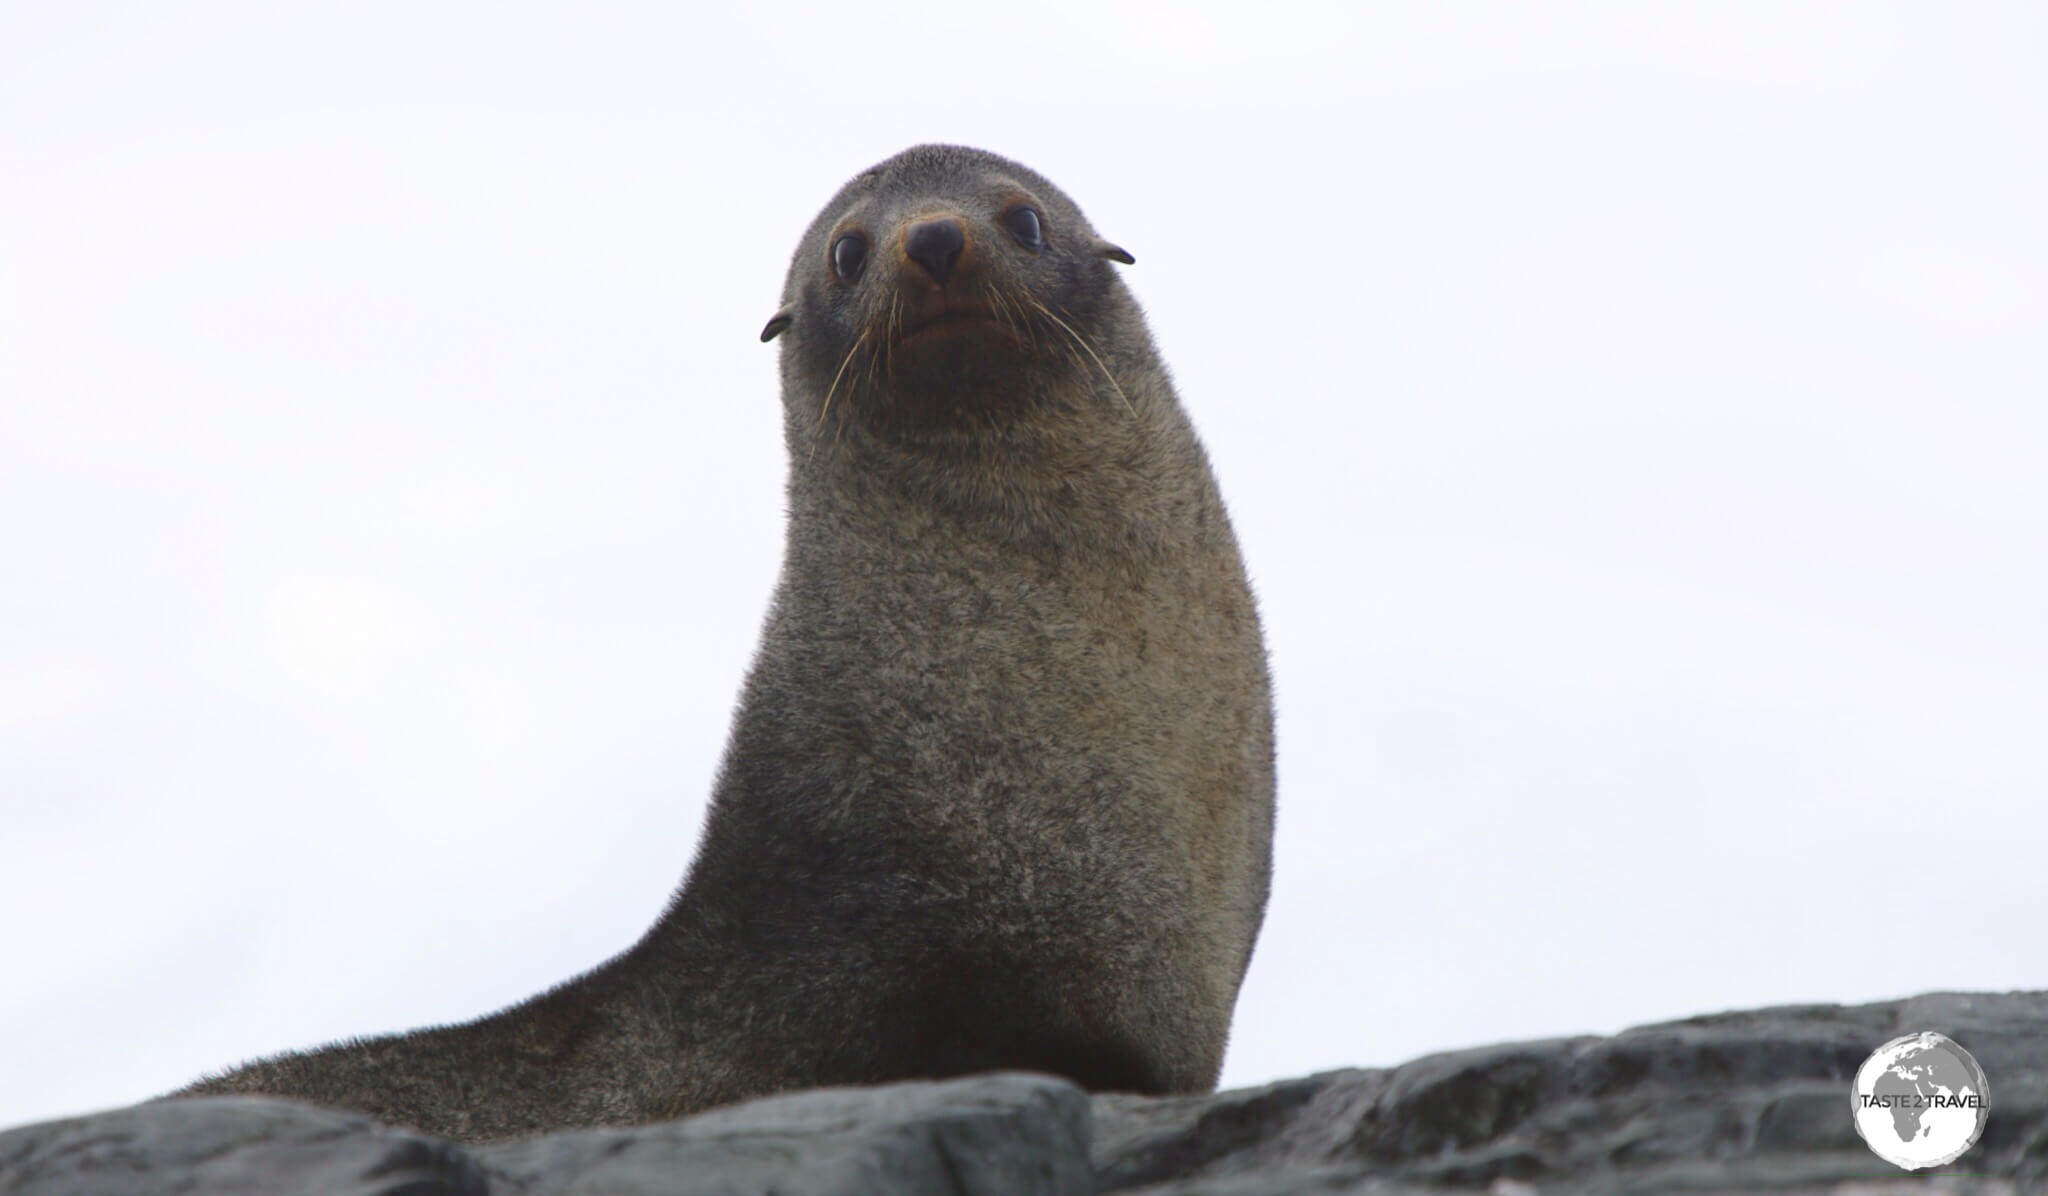 Almost hunted to extinction, the Antarctic Fur Seal has made a comeback with population estimates of around 4 million.